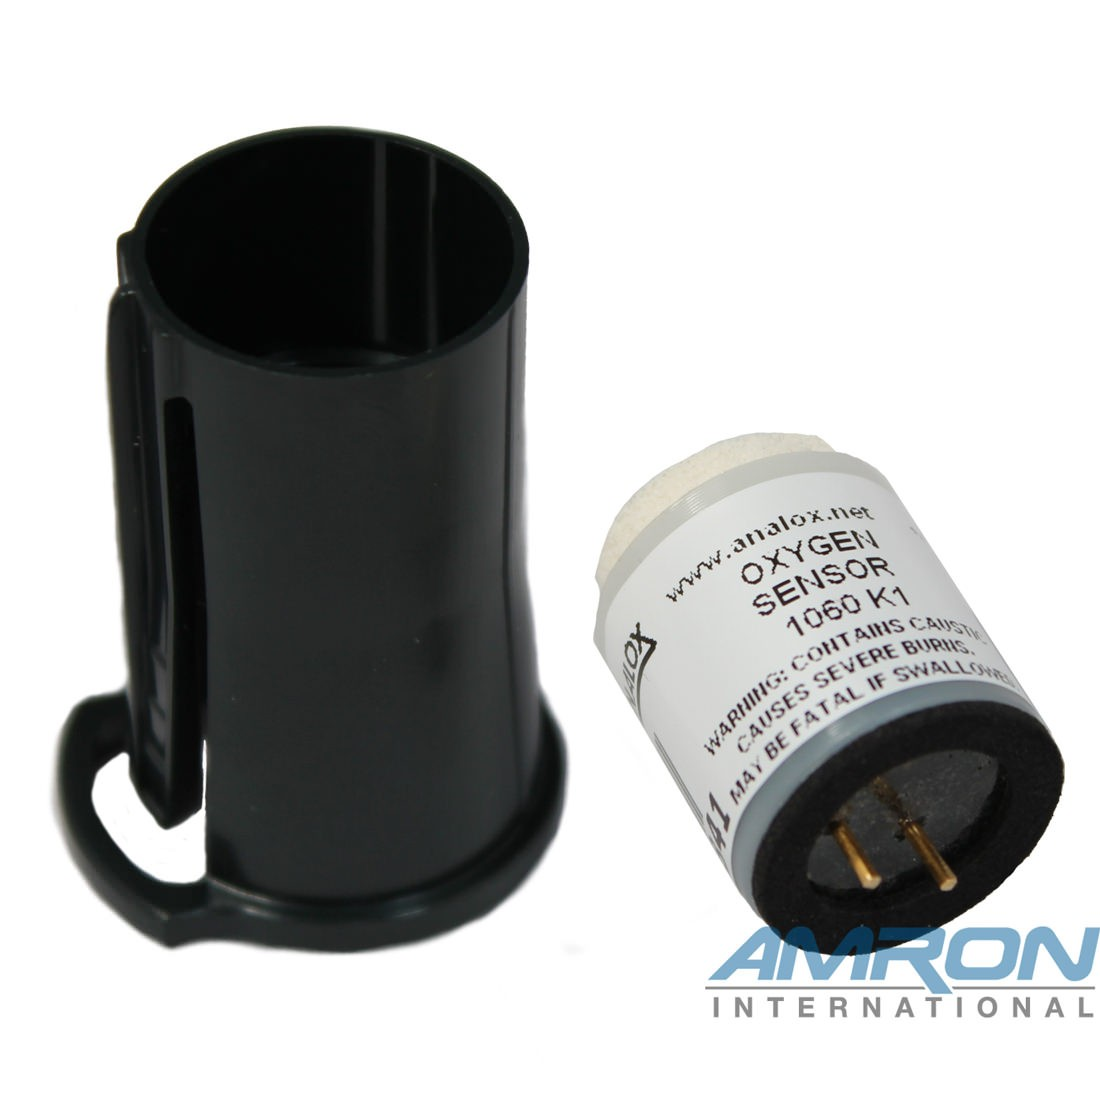 Analox Replacement Oxygen (O2) Sensor and Extraction Tool for the ADM Aspida 9100-1060RK